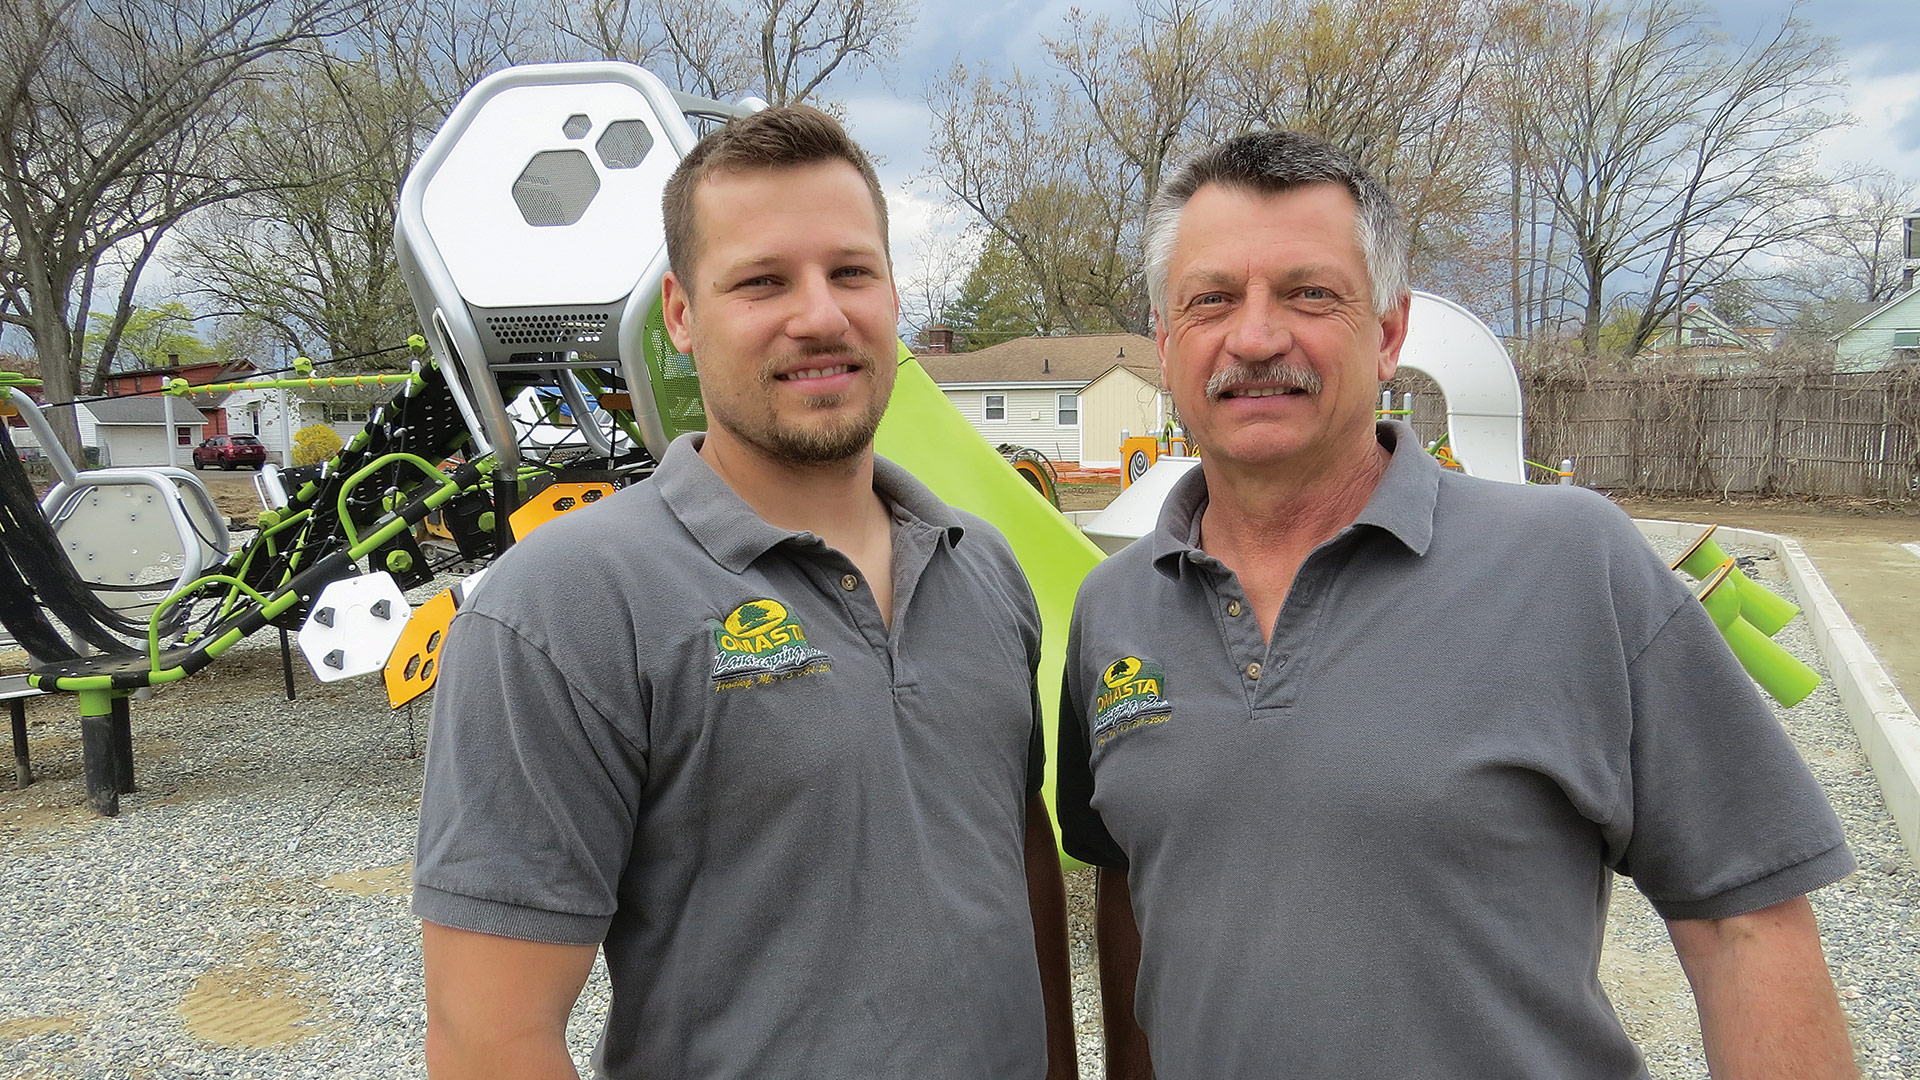 Greg Omasta, right, seen here with his son, Chris, at the new Walsh Park in Springfield